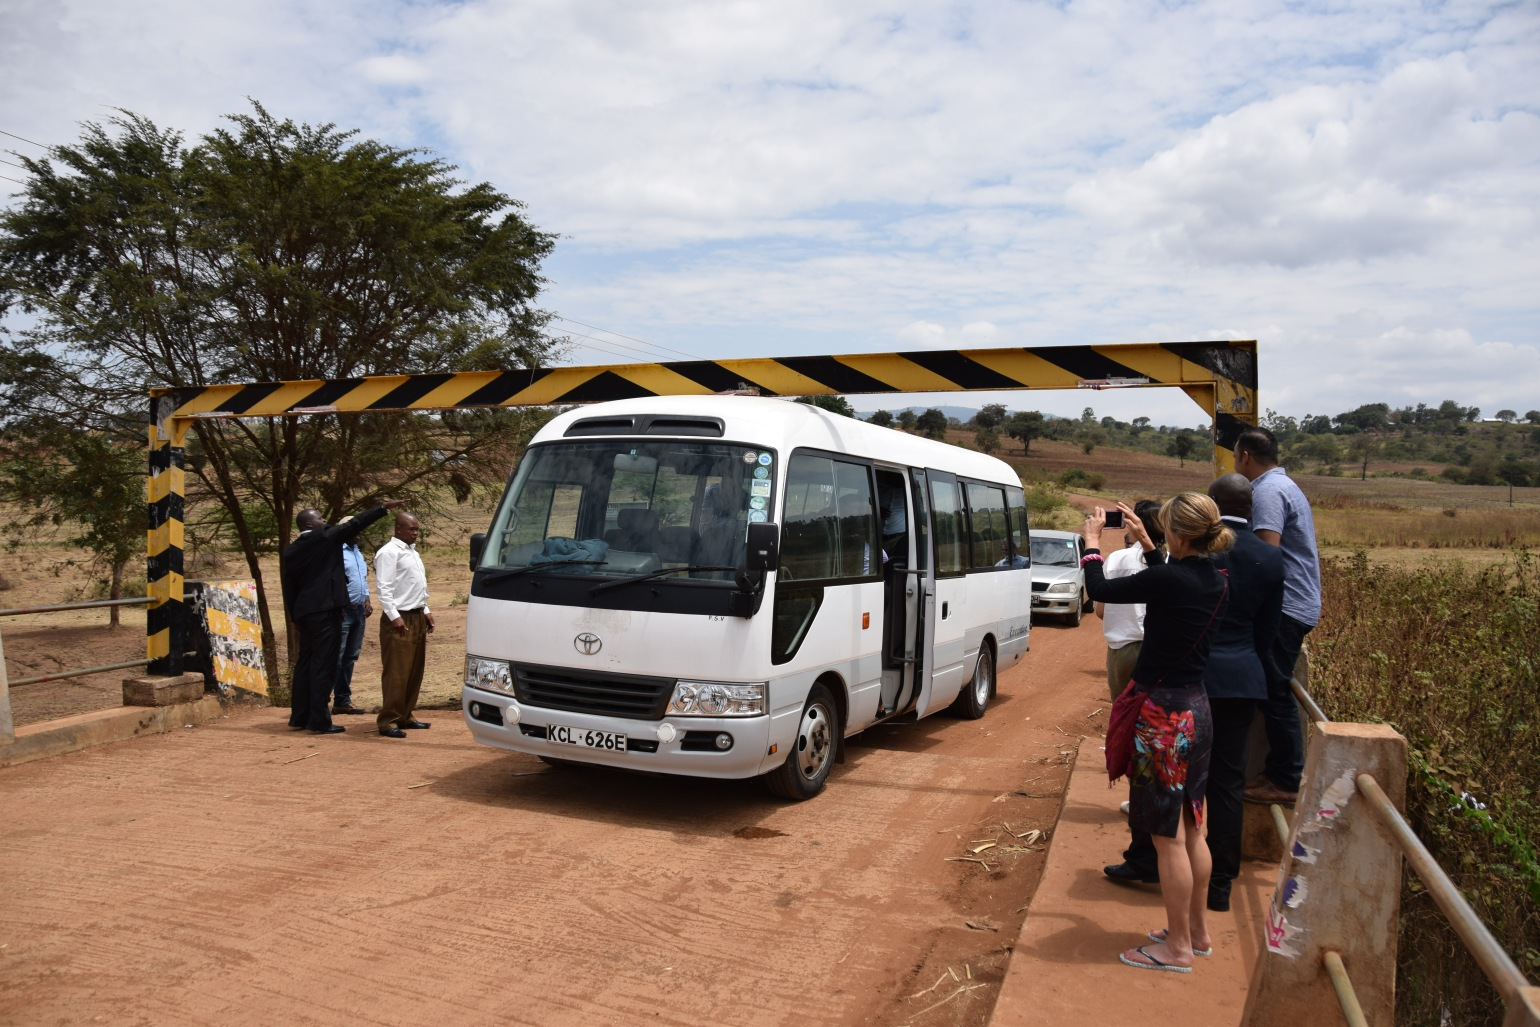 Bus gets stuck driving through rural kenya